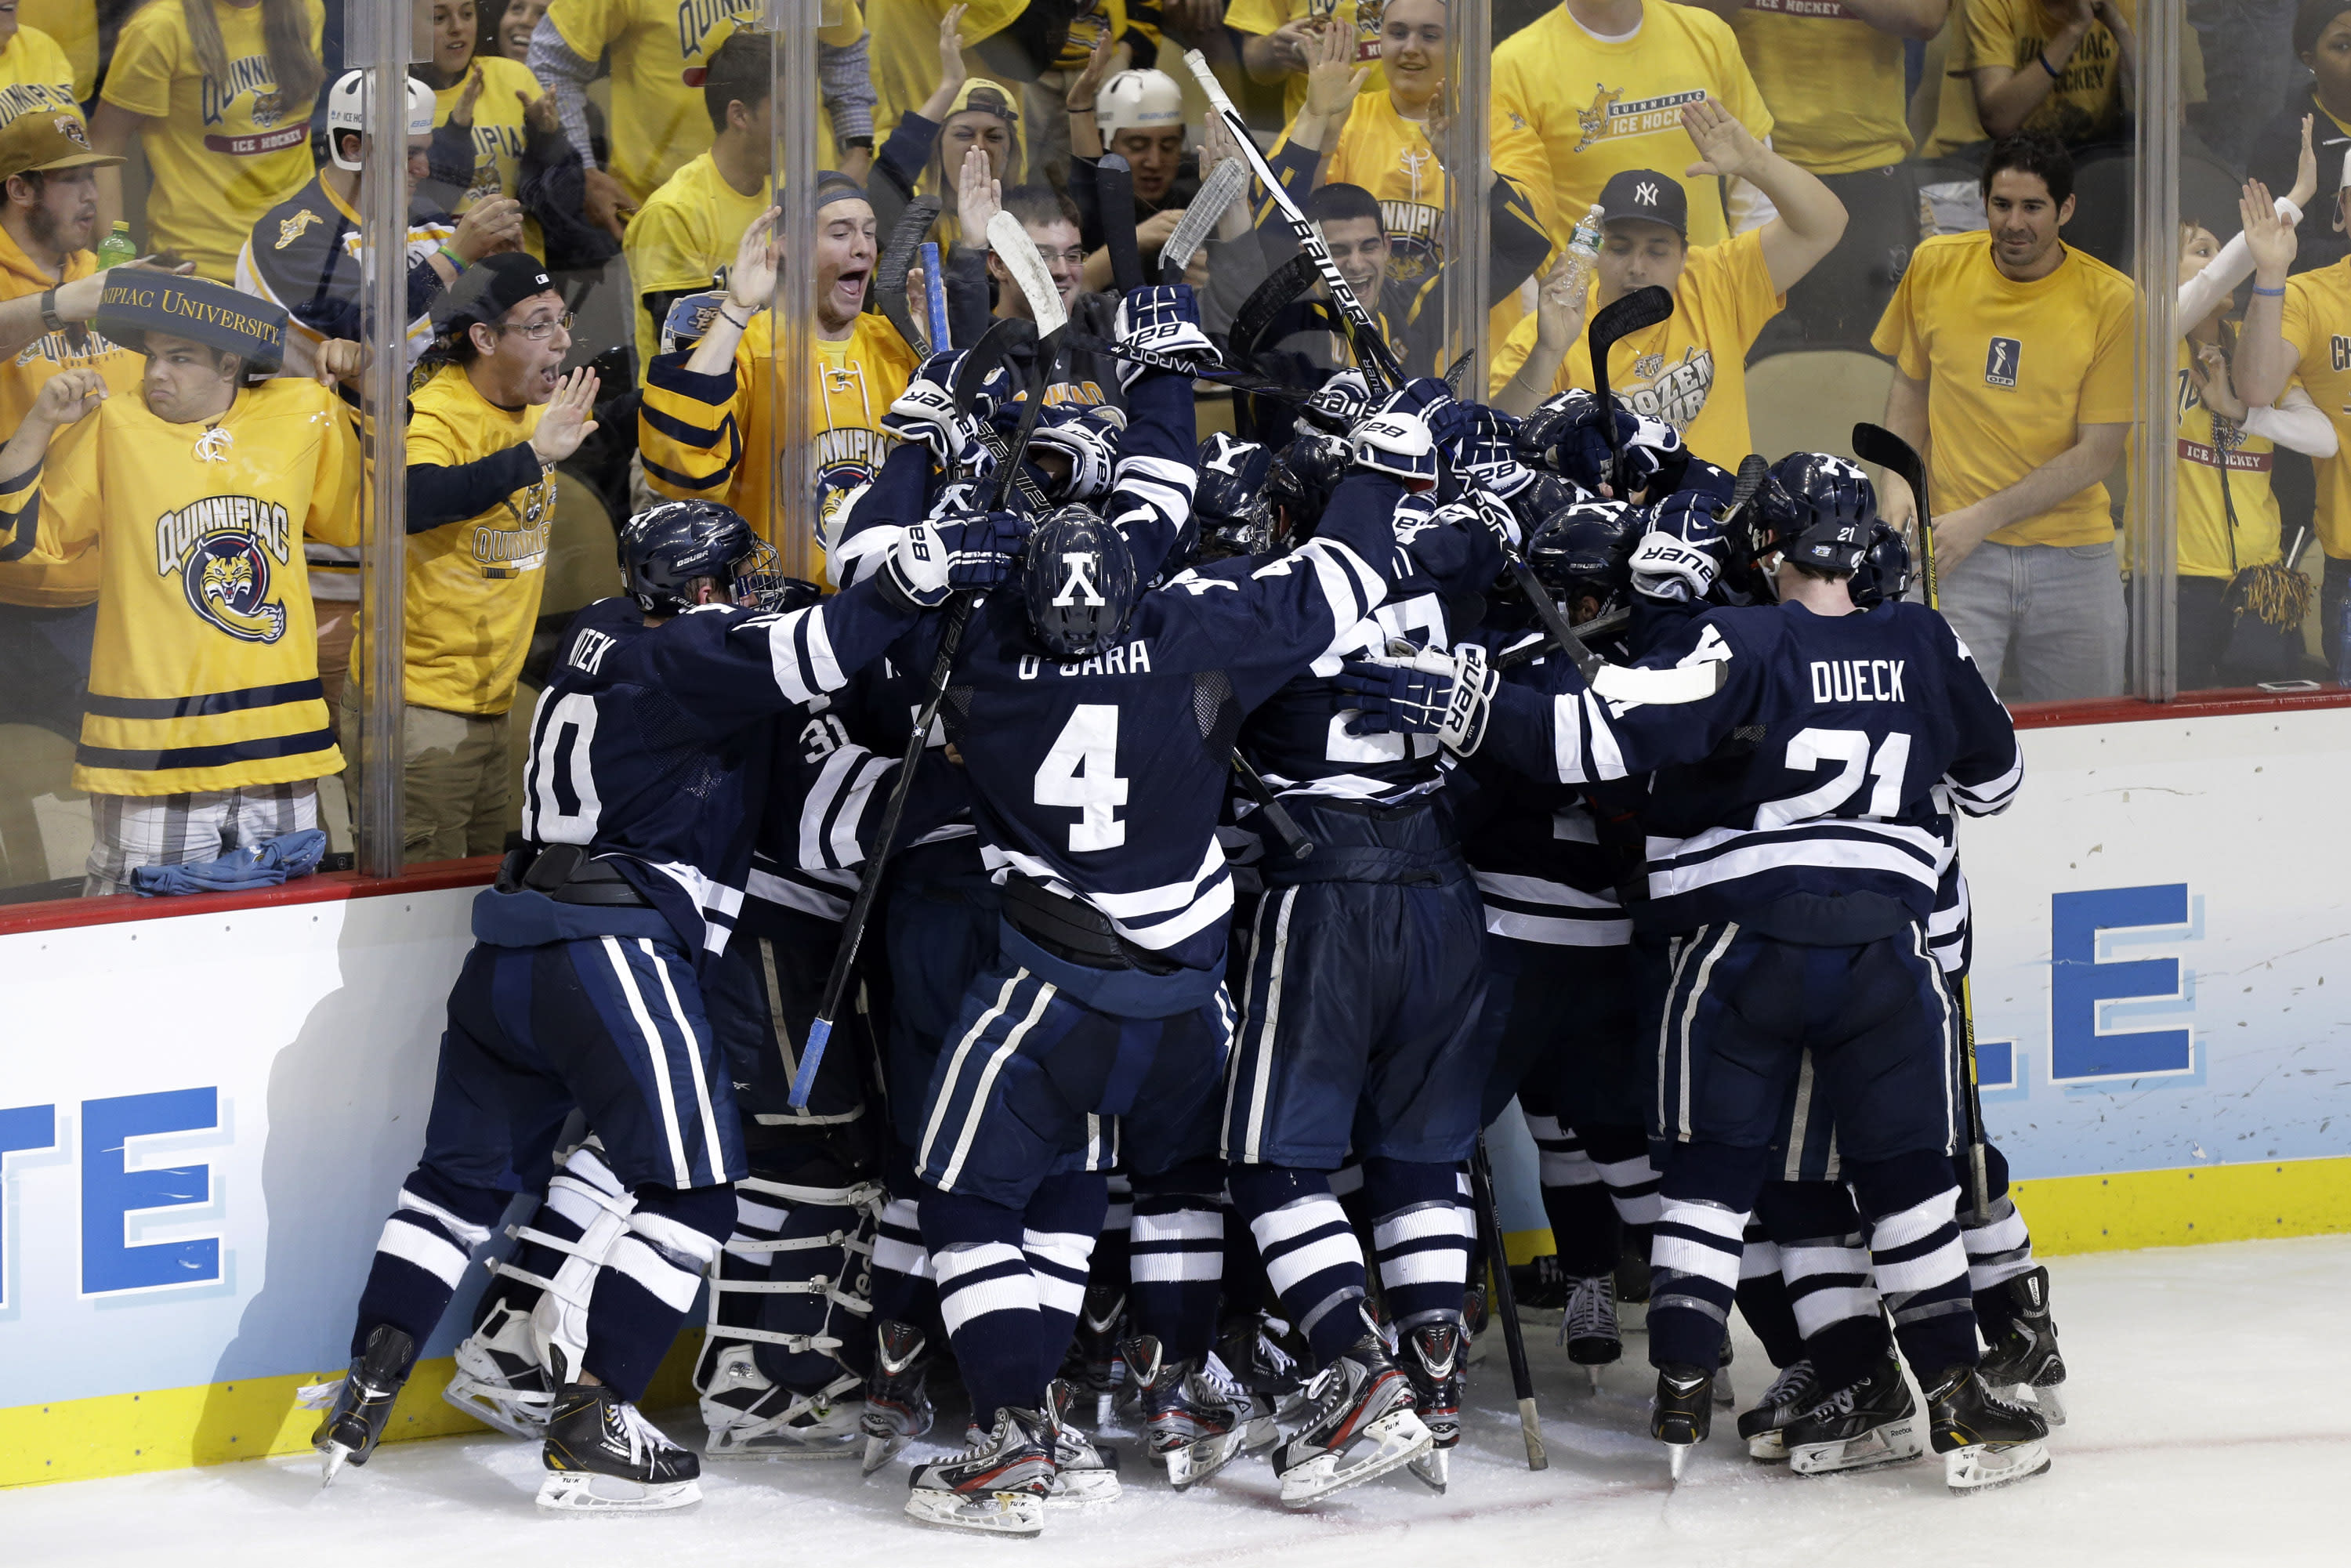 The Yale bench piles on right wing Andrew Miller to celebrate his game-winning overtime goal against UMass Lowell during an NCAA Frozen Four college hockey semifinal in Pittsburgh on Thursday, April 11, 2013. Yale won 3-2. (AP Photo/Gene J. Puskar)